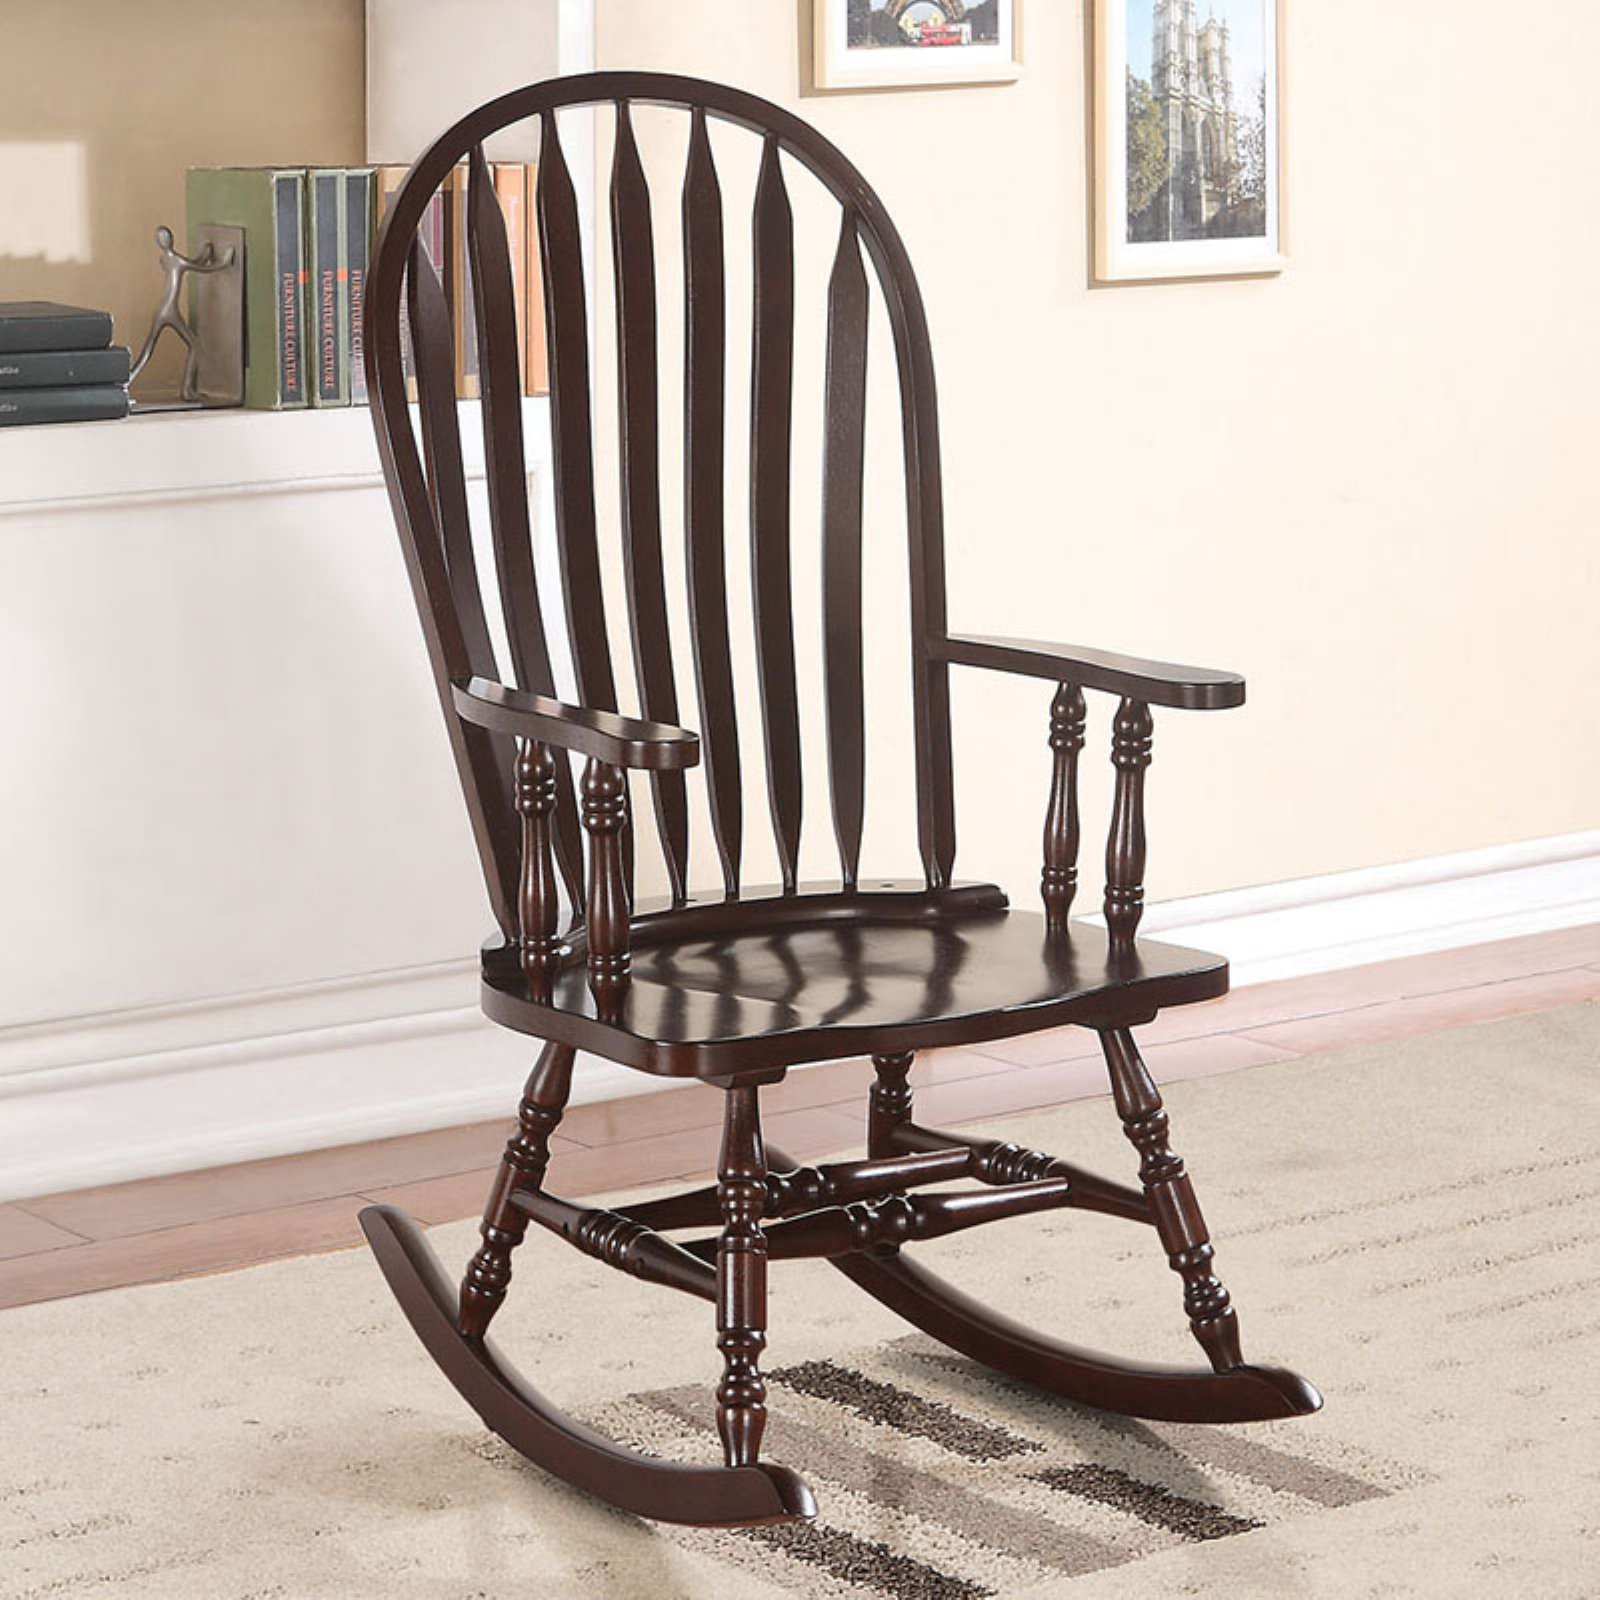 Acme Furniture Kloris Arched Back Rocking Chair | Products Pertaining To Tobacco Brown Kids Rocking Chairs (View 10 of 20)